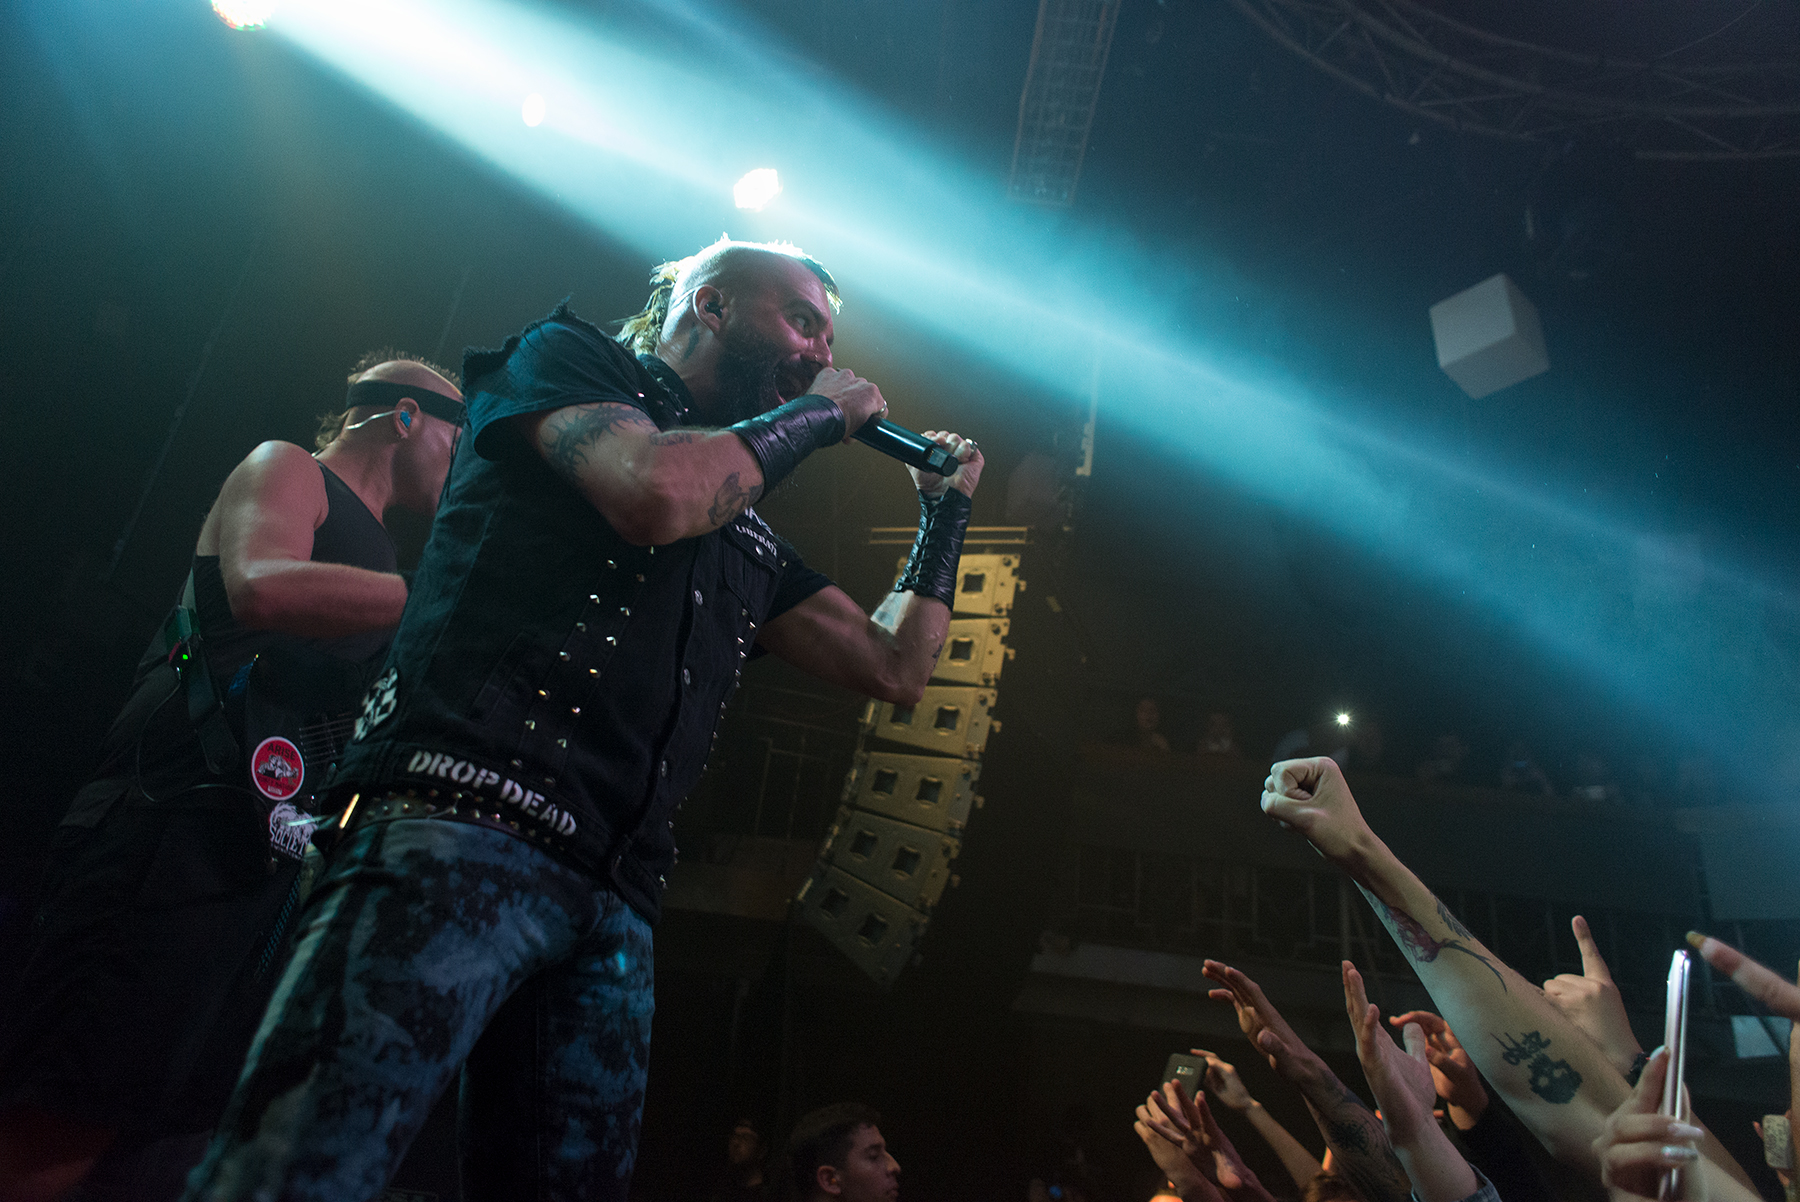 Killswitch Engage: Desatados en tiempos de lucha